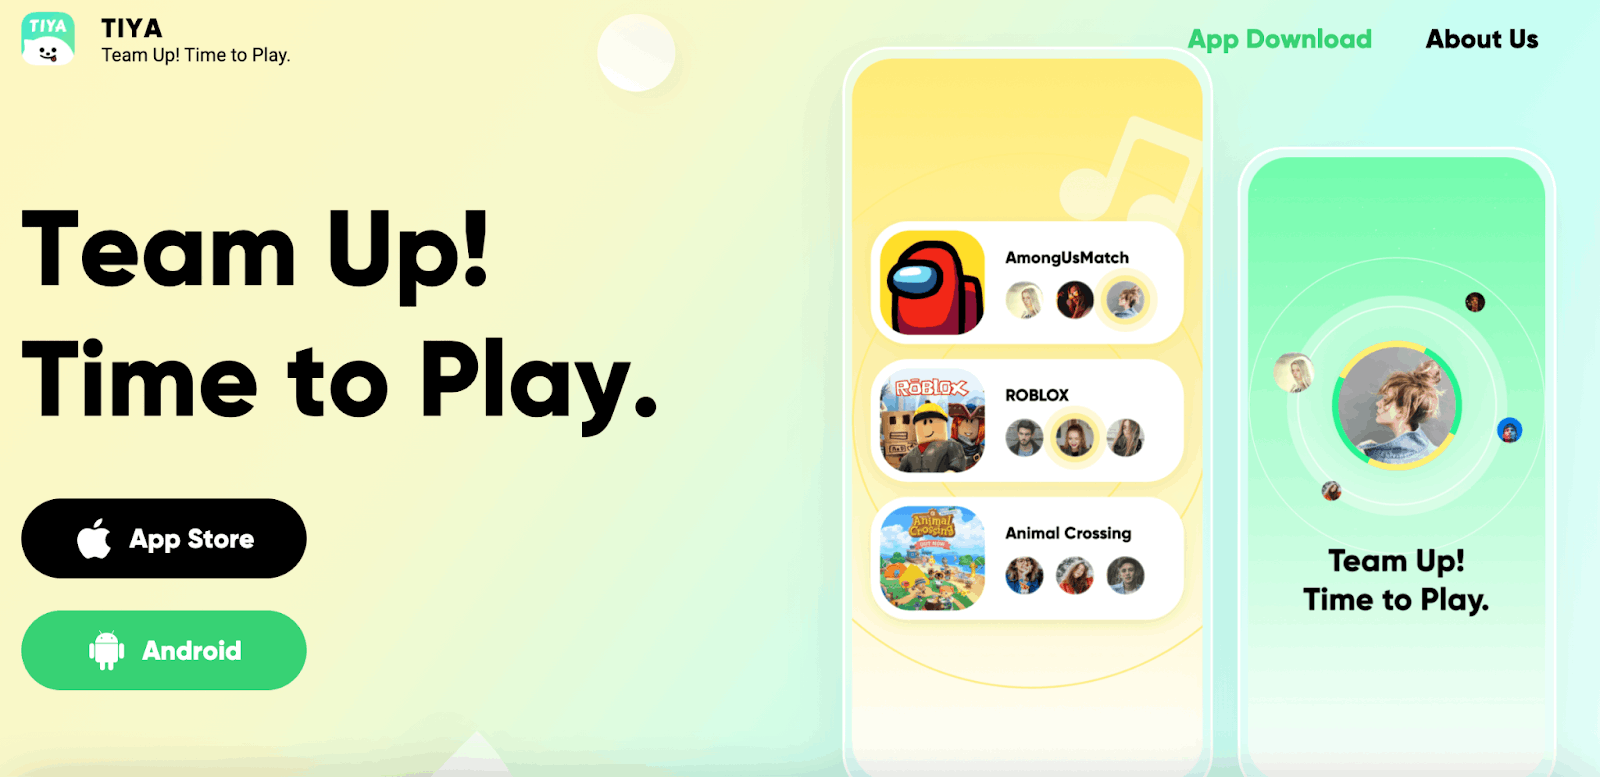 Tiya - Chat and Play Games with Friends